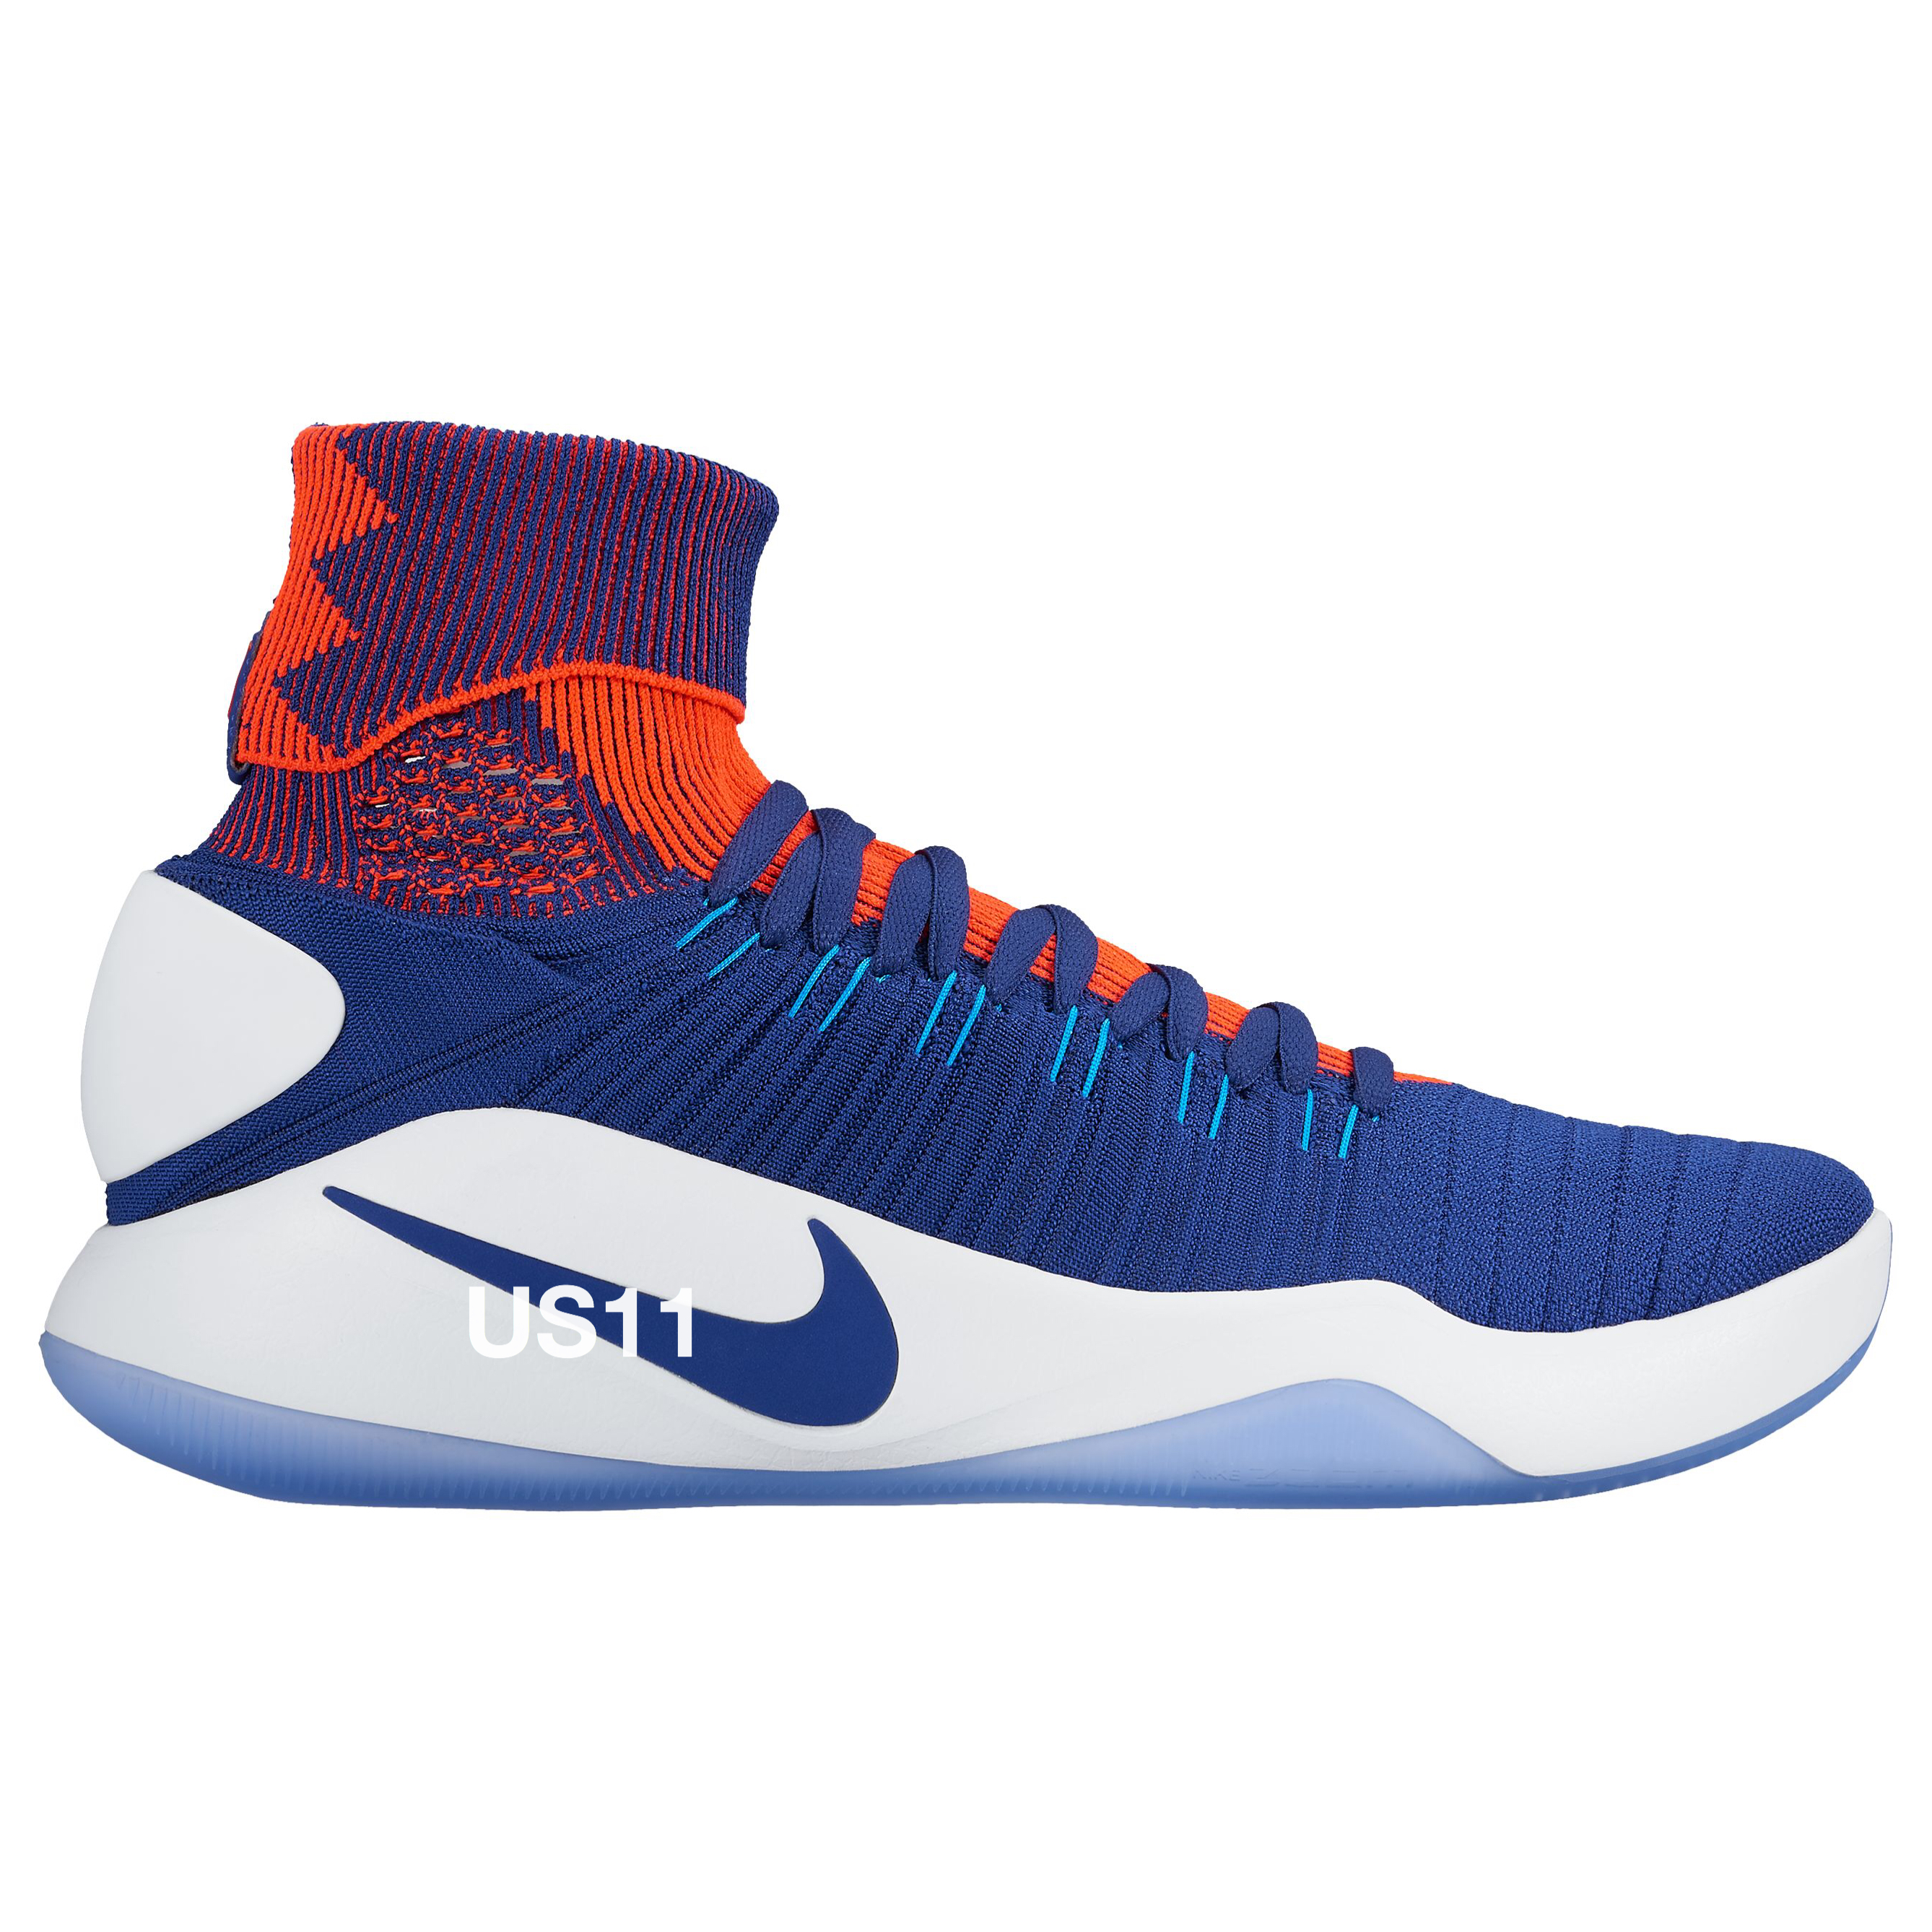 Nike Hyperdunk 2017 Colorways appelgaard.nu